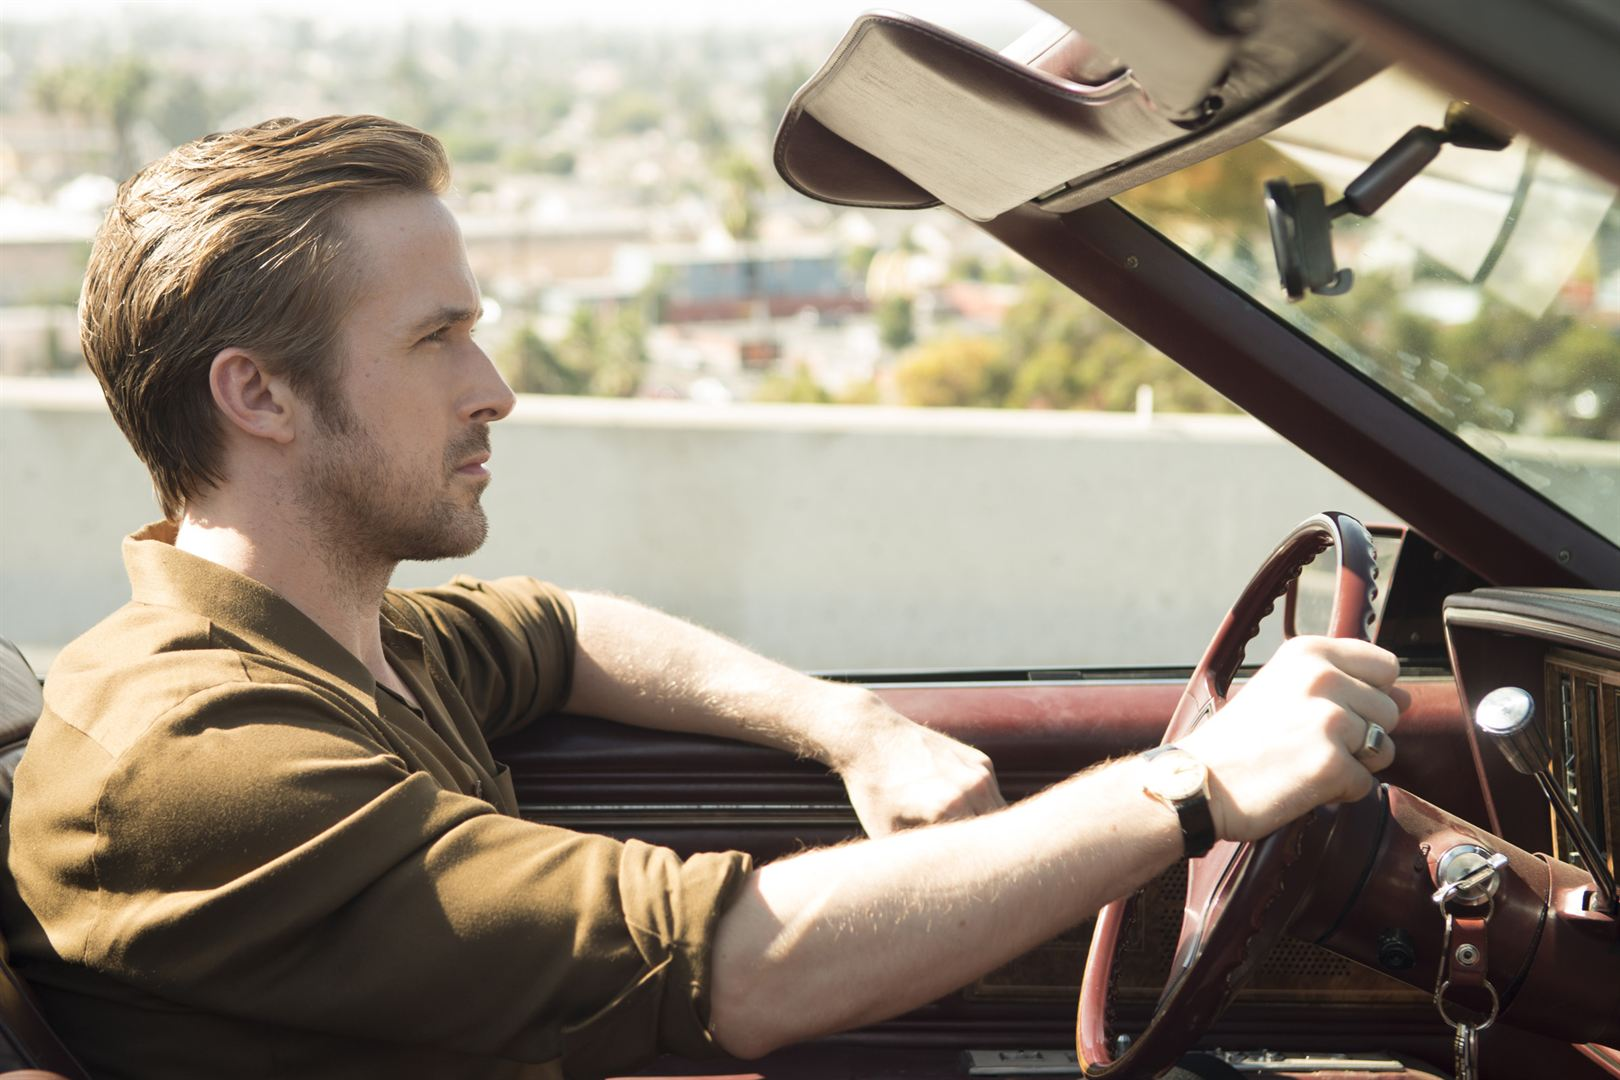 La La Land Los Angeles - Ryan Gosling Los Angeles